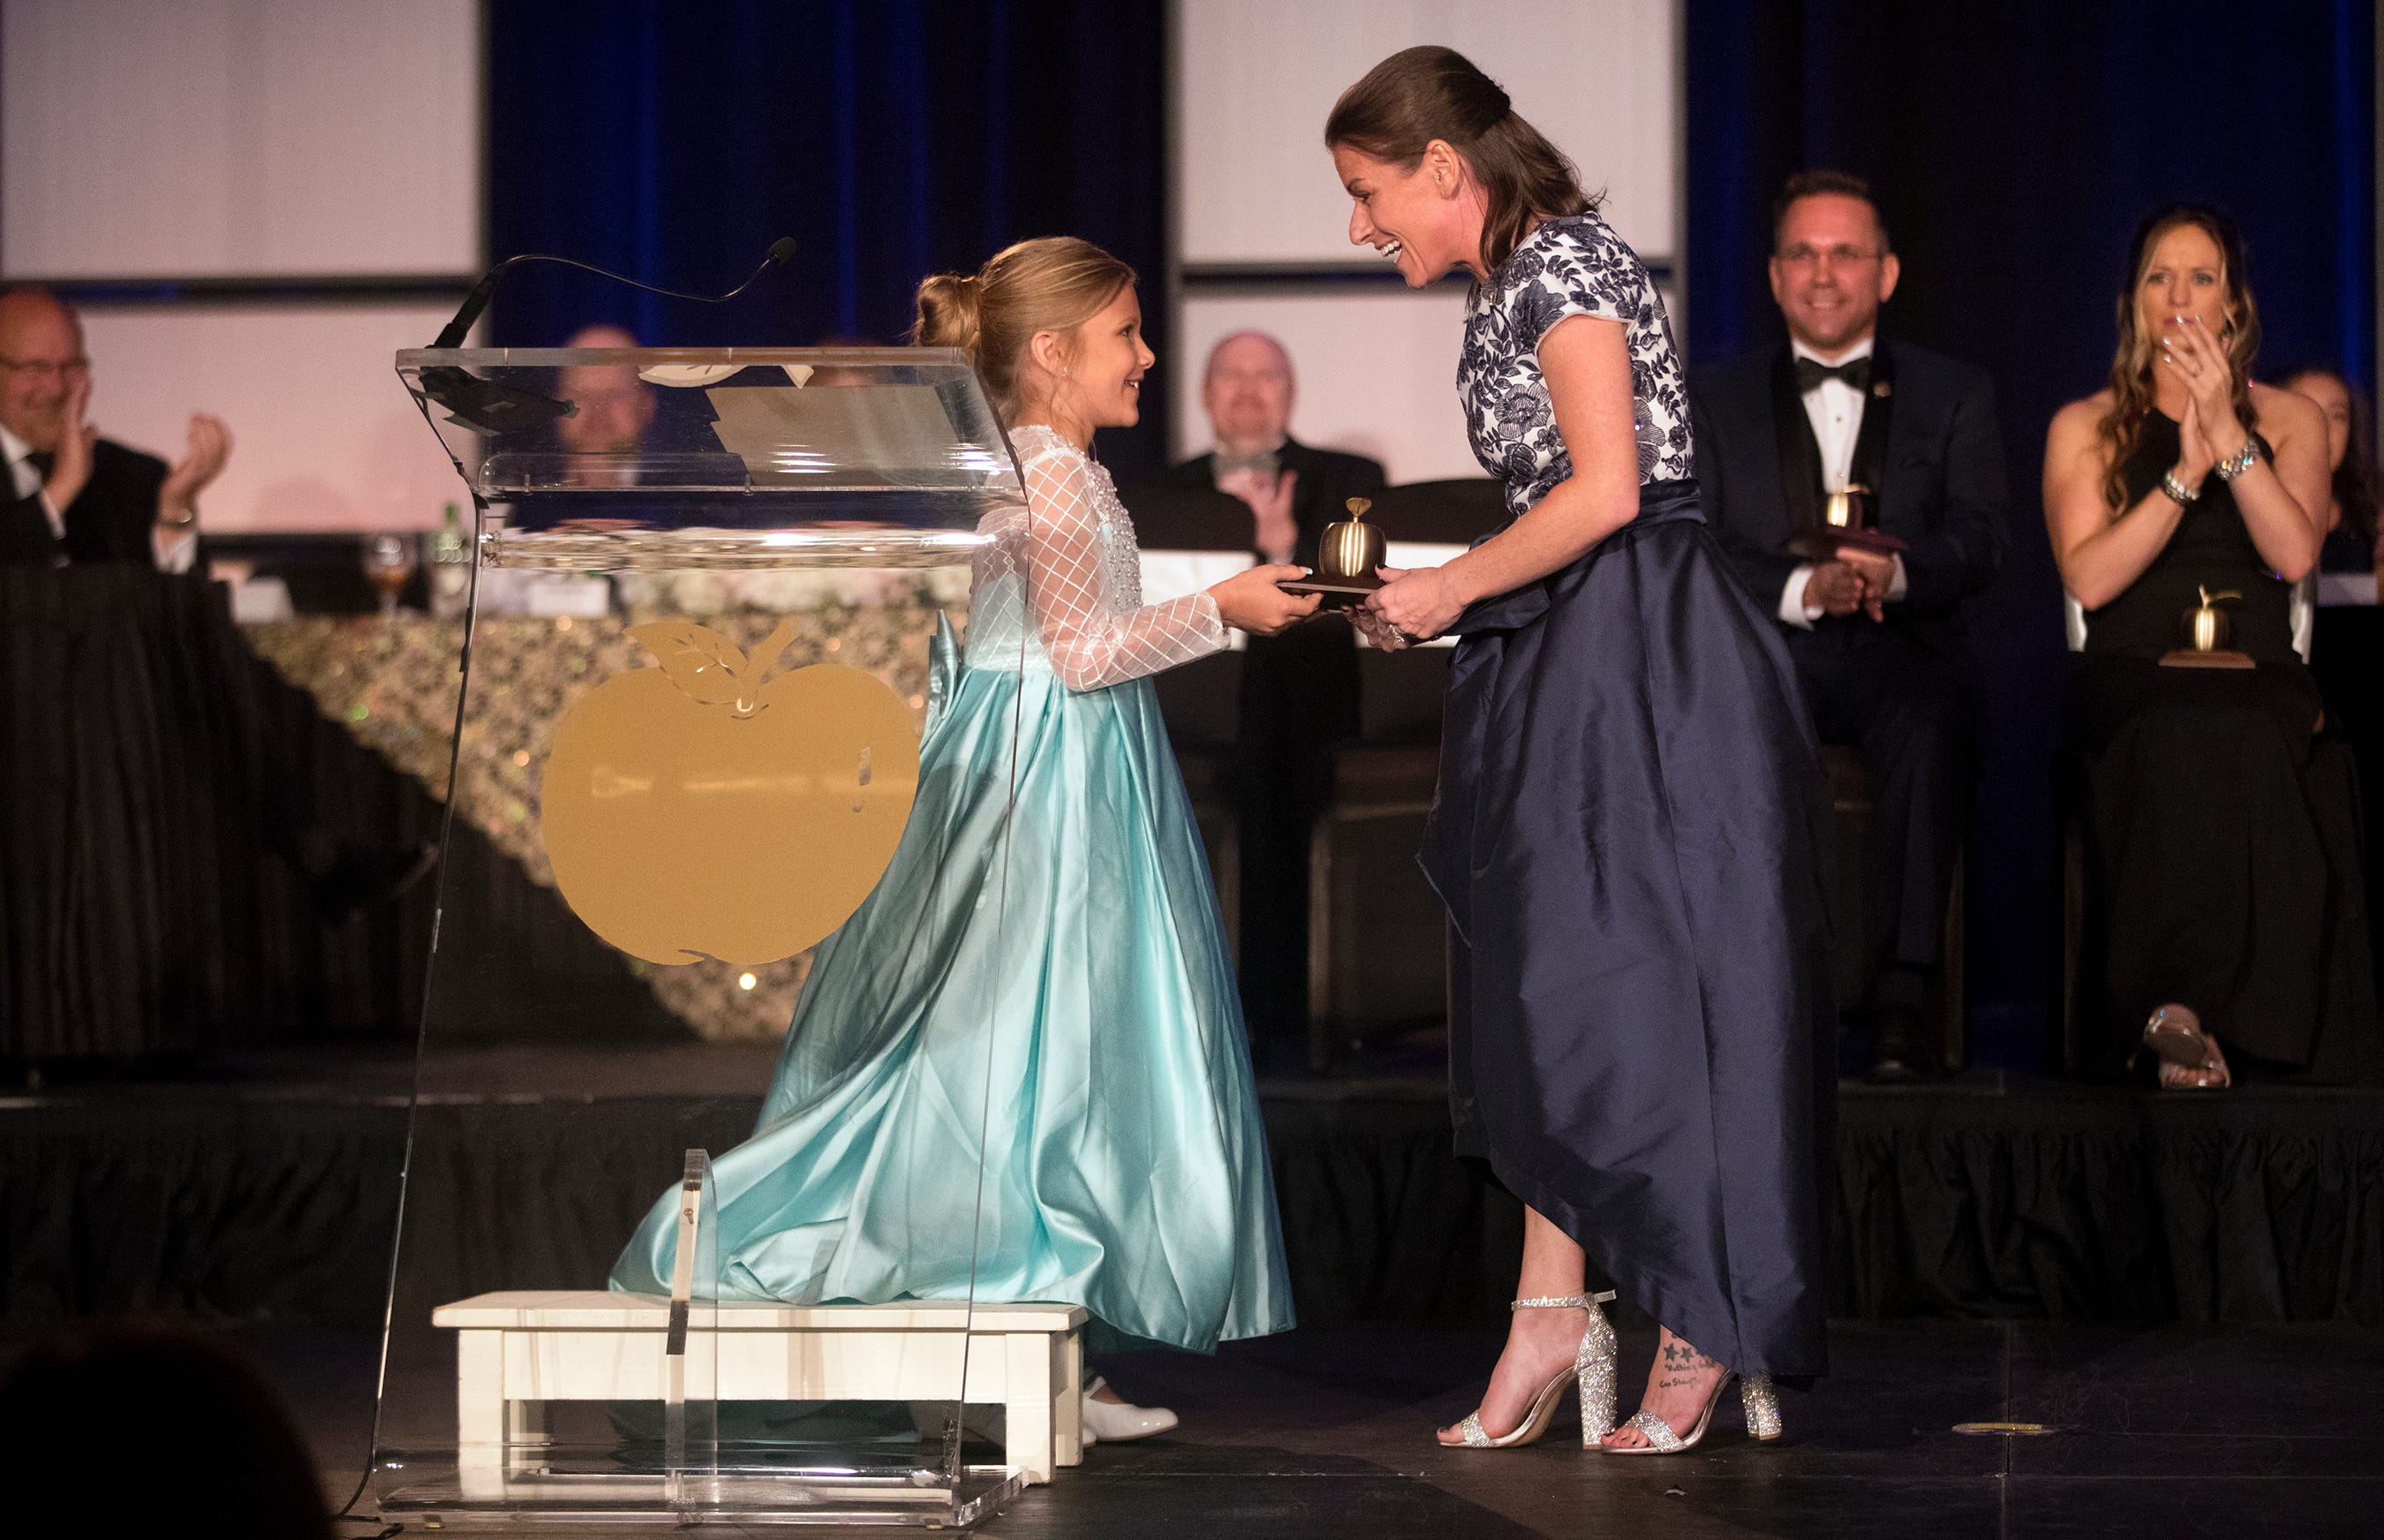 Gulf Elementary School student Makenzie Brown presents a Golden Apple to her teacher Kristina Gale on Friday at the Golden Apple Teacher Recognition Banquet at the Hyatt Regency Coconut Point in Bonita Springs.